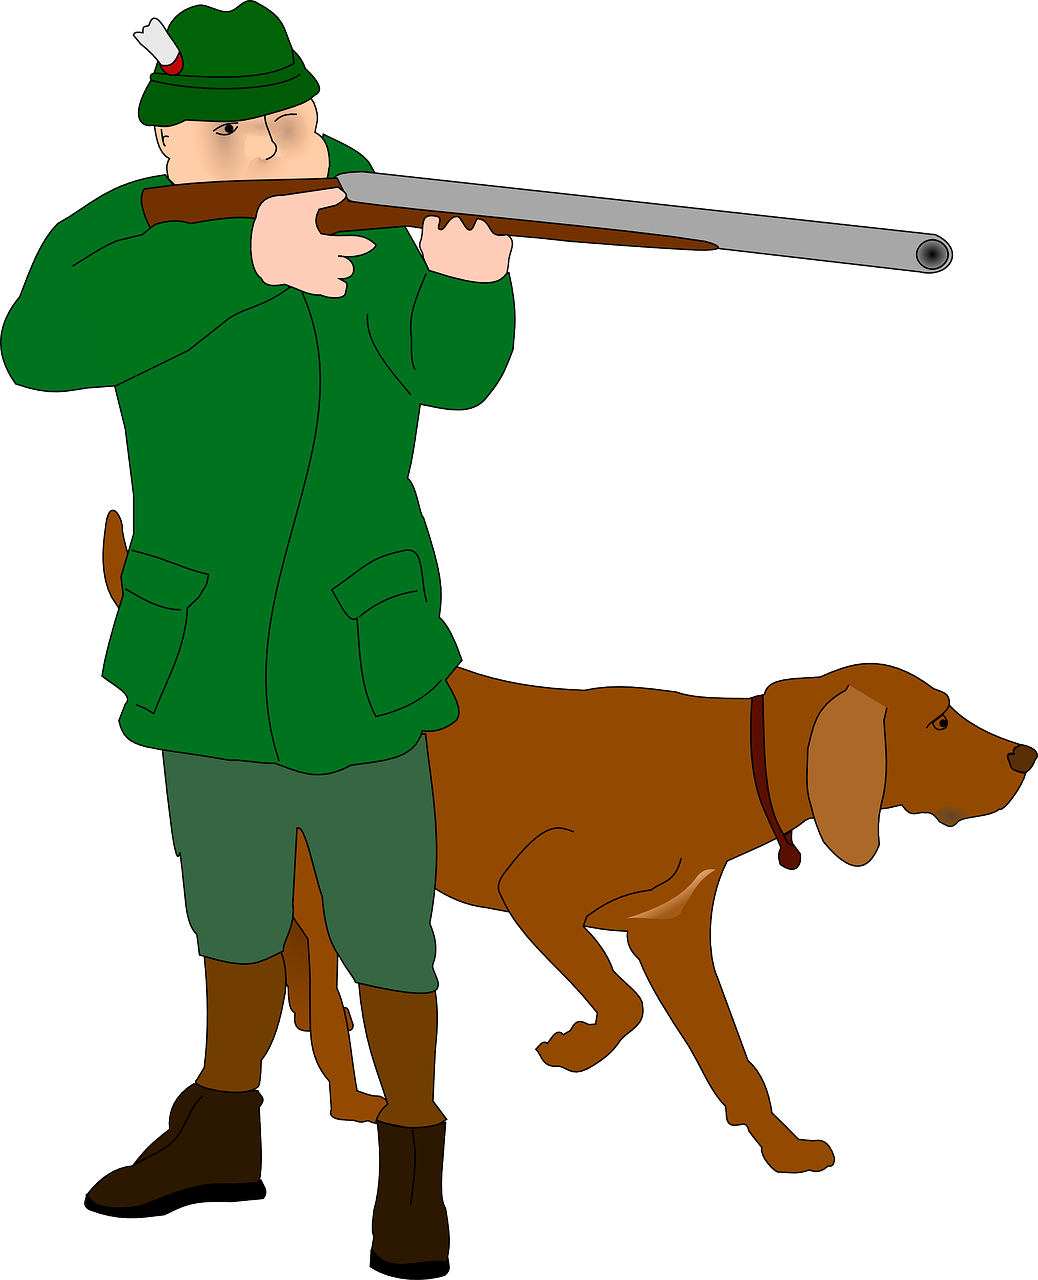 clipart showing a man taking aim with a shotgun, accompanied by a hunting dog